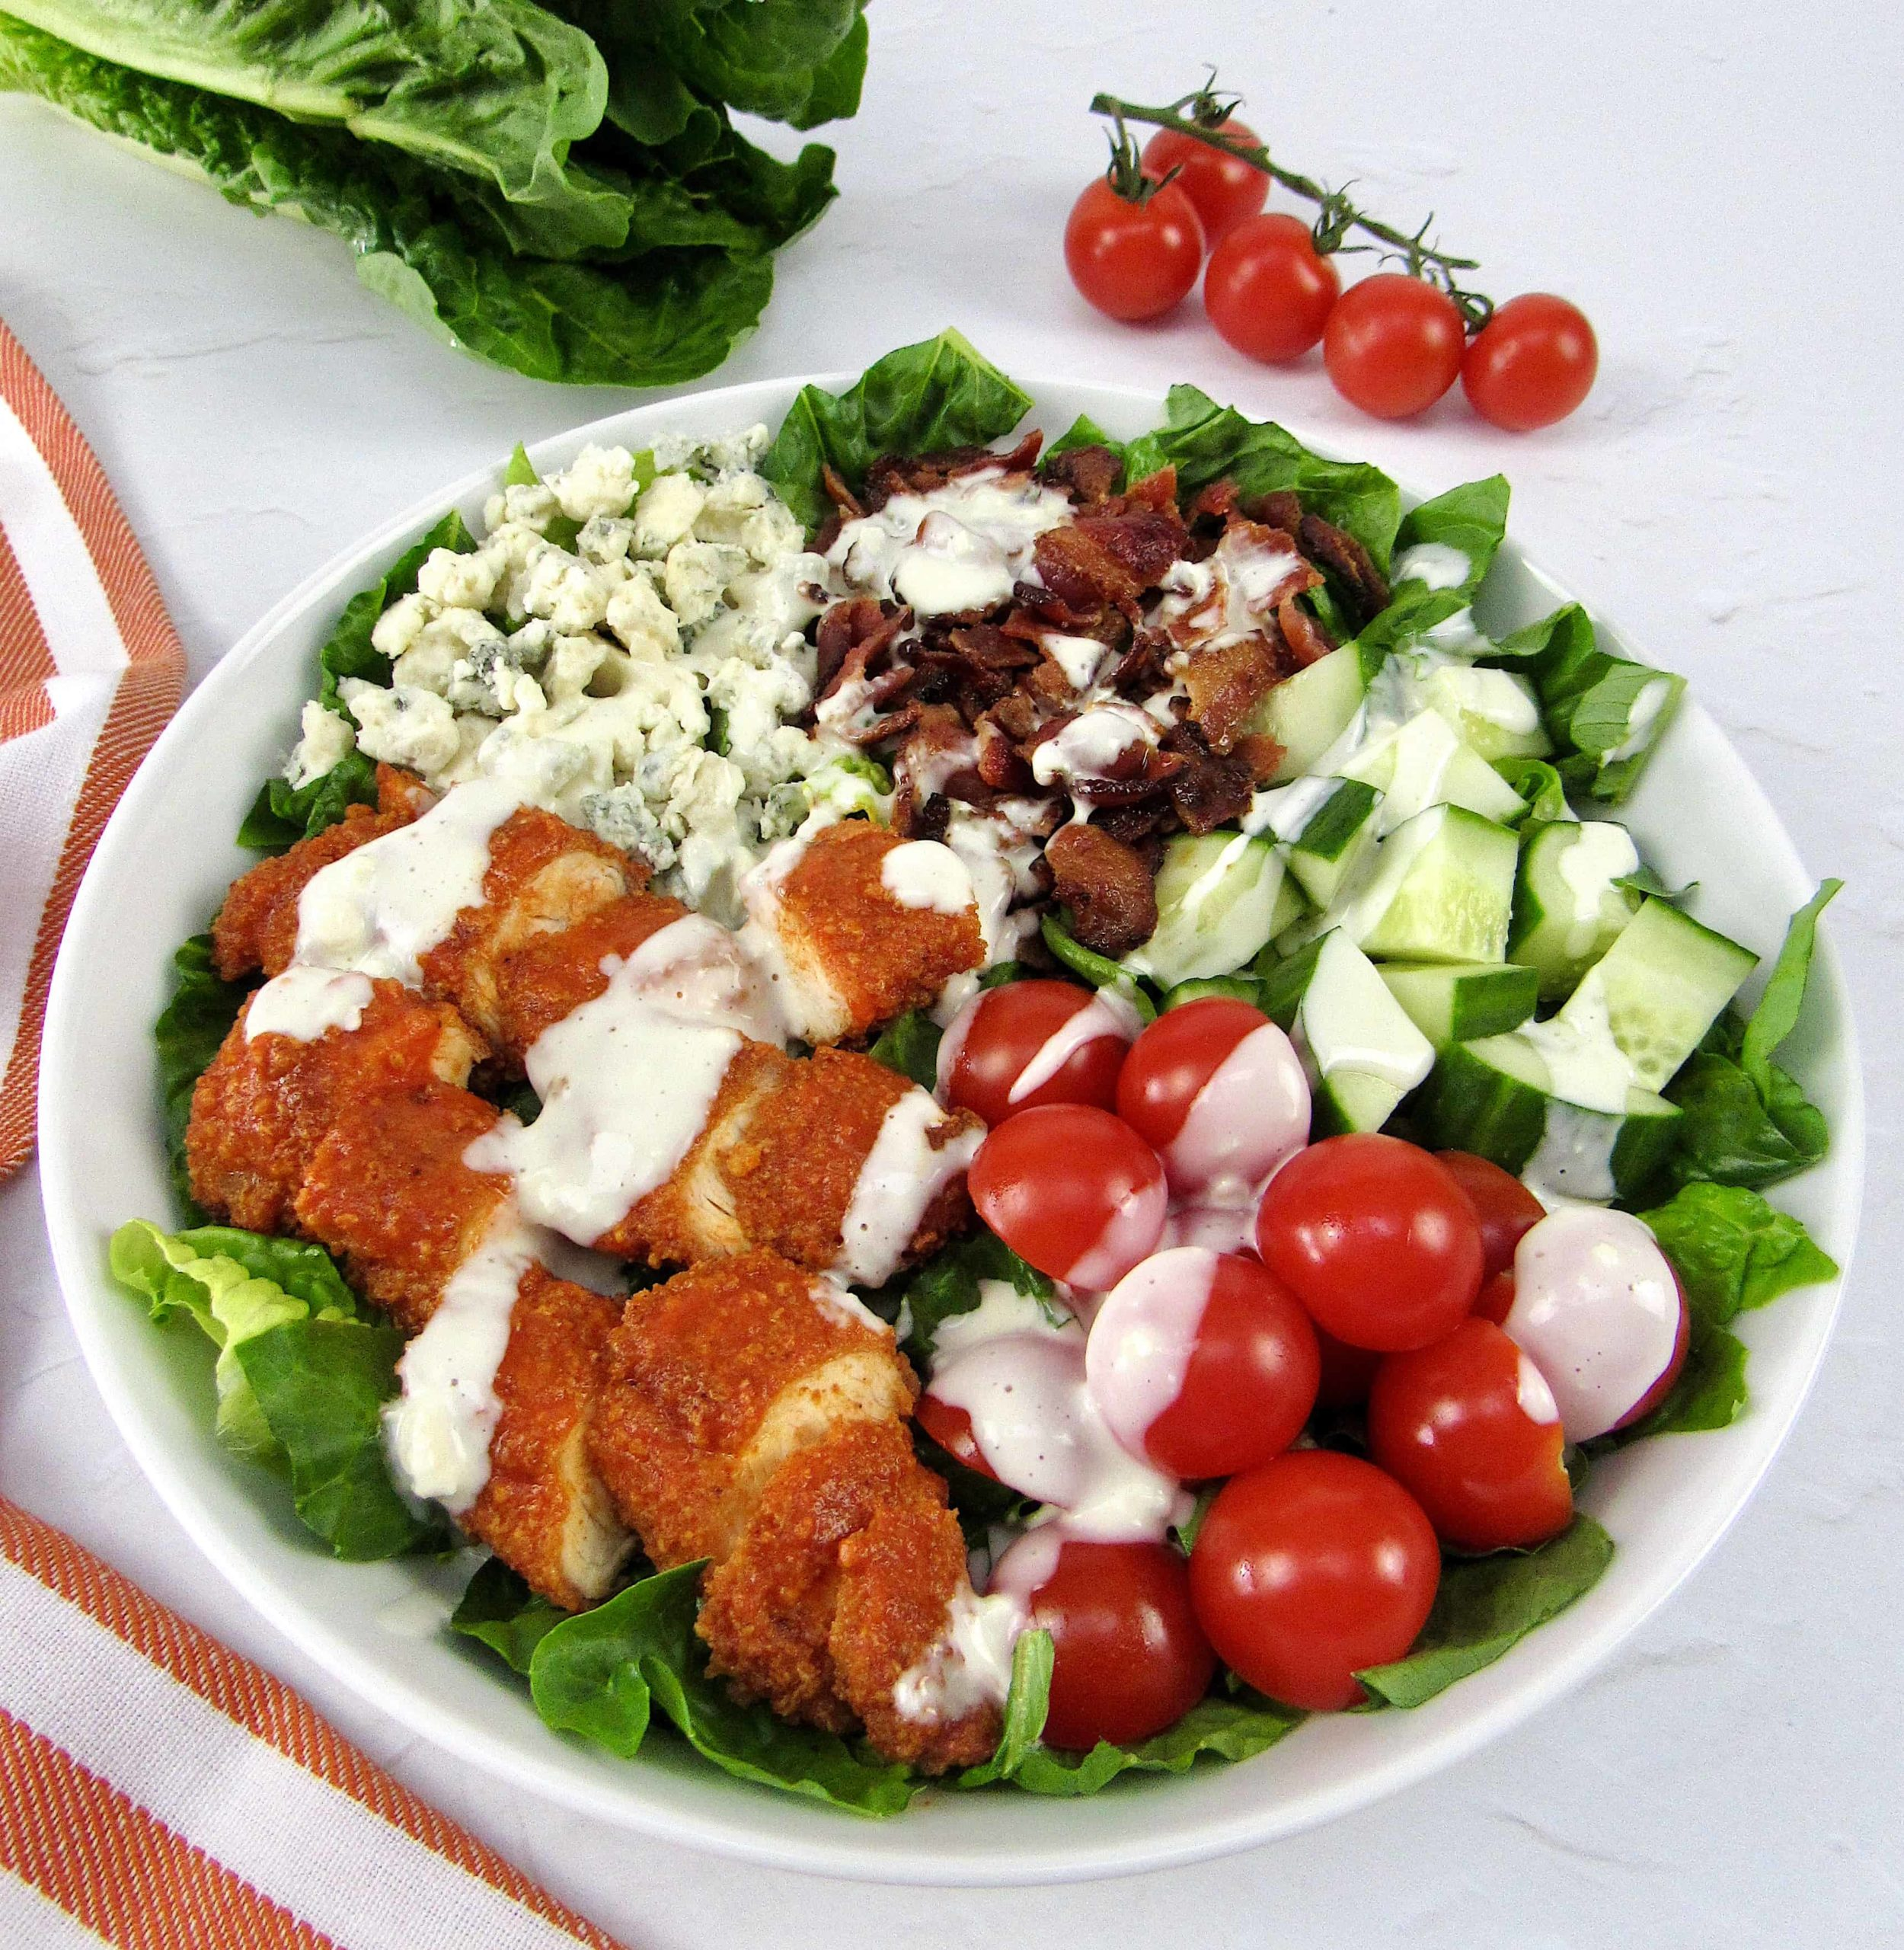 buffalo chicken salad with blue cheese on top